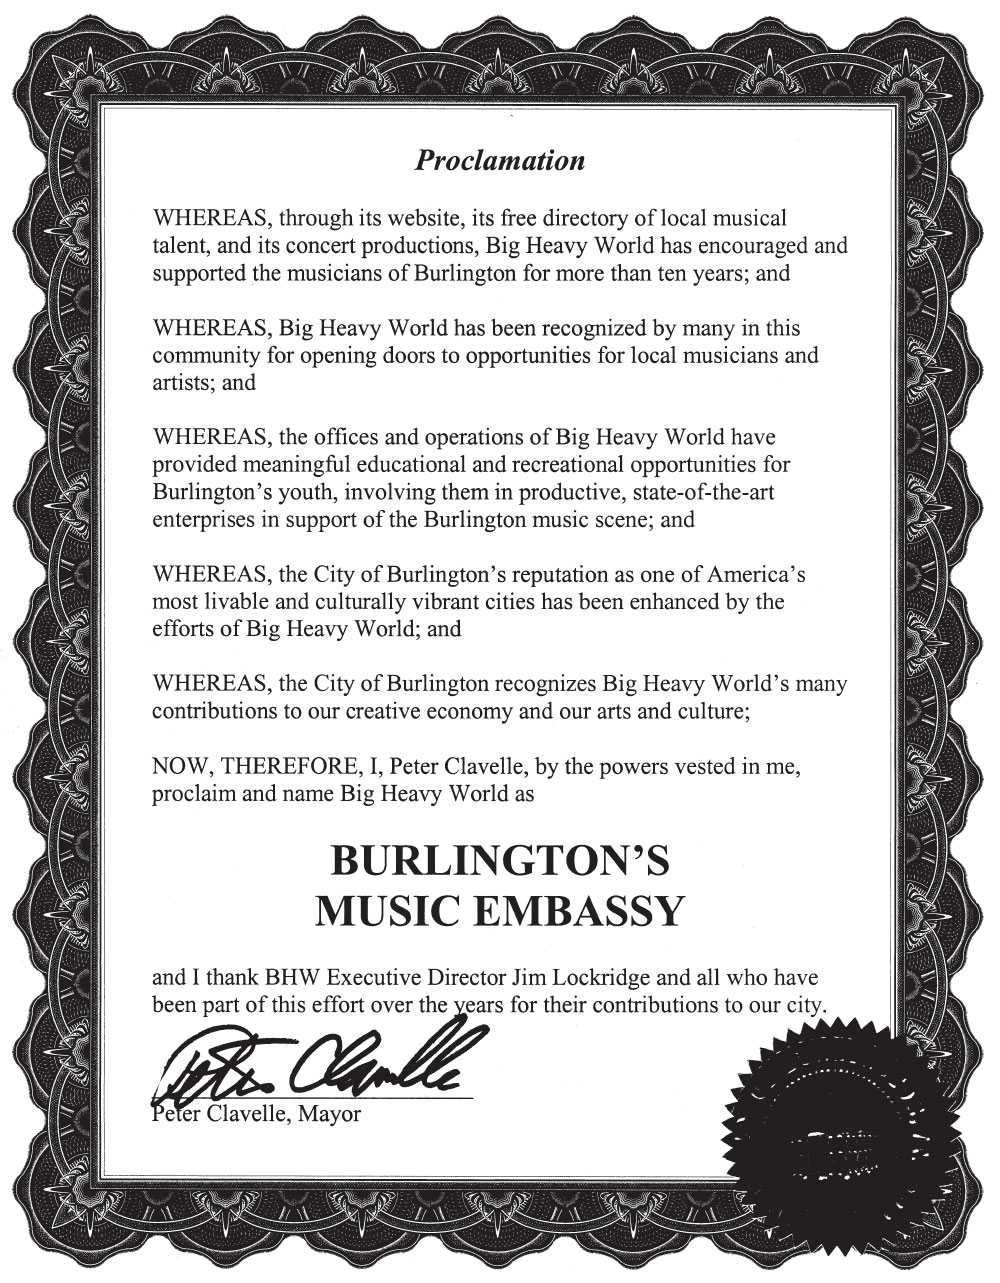 Burlington's Music Embassy